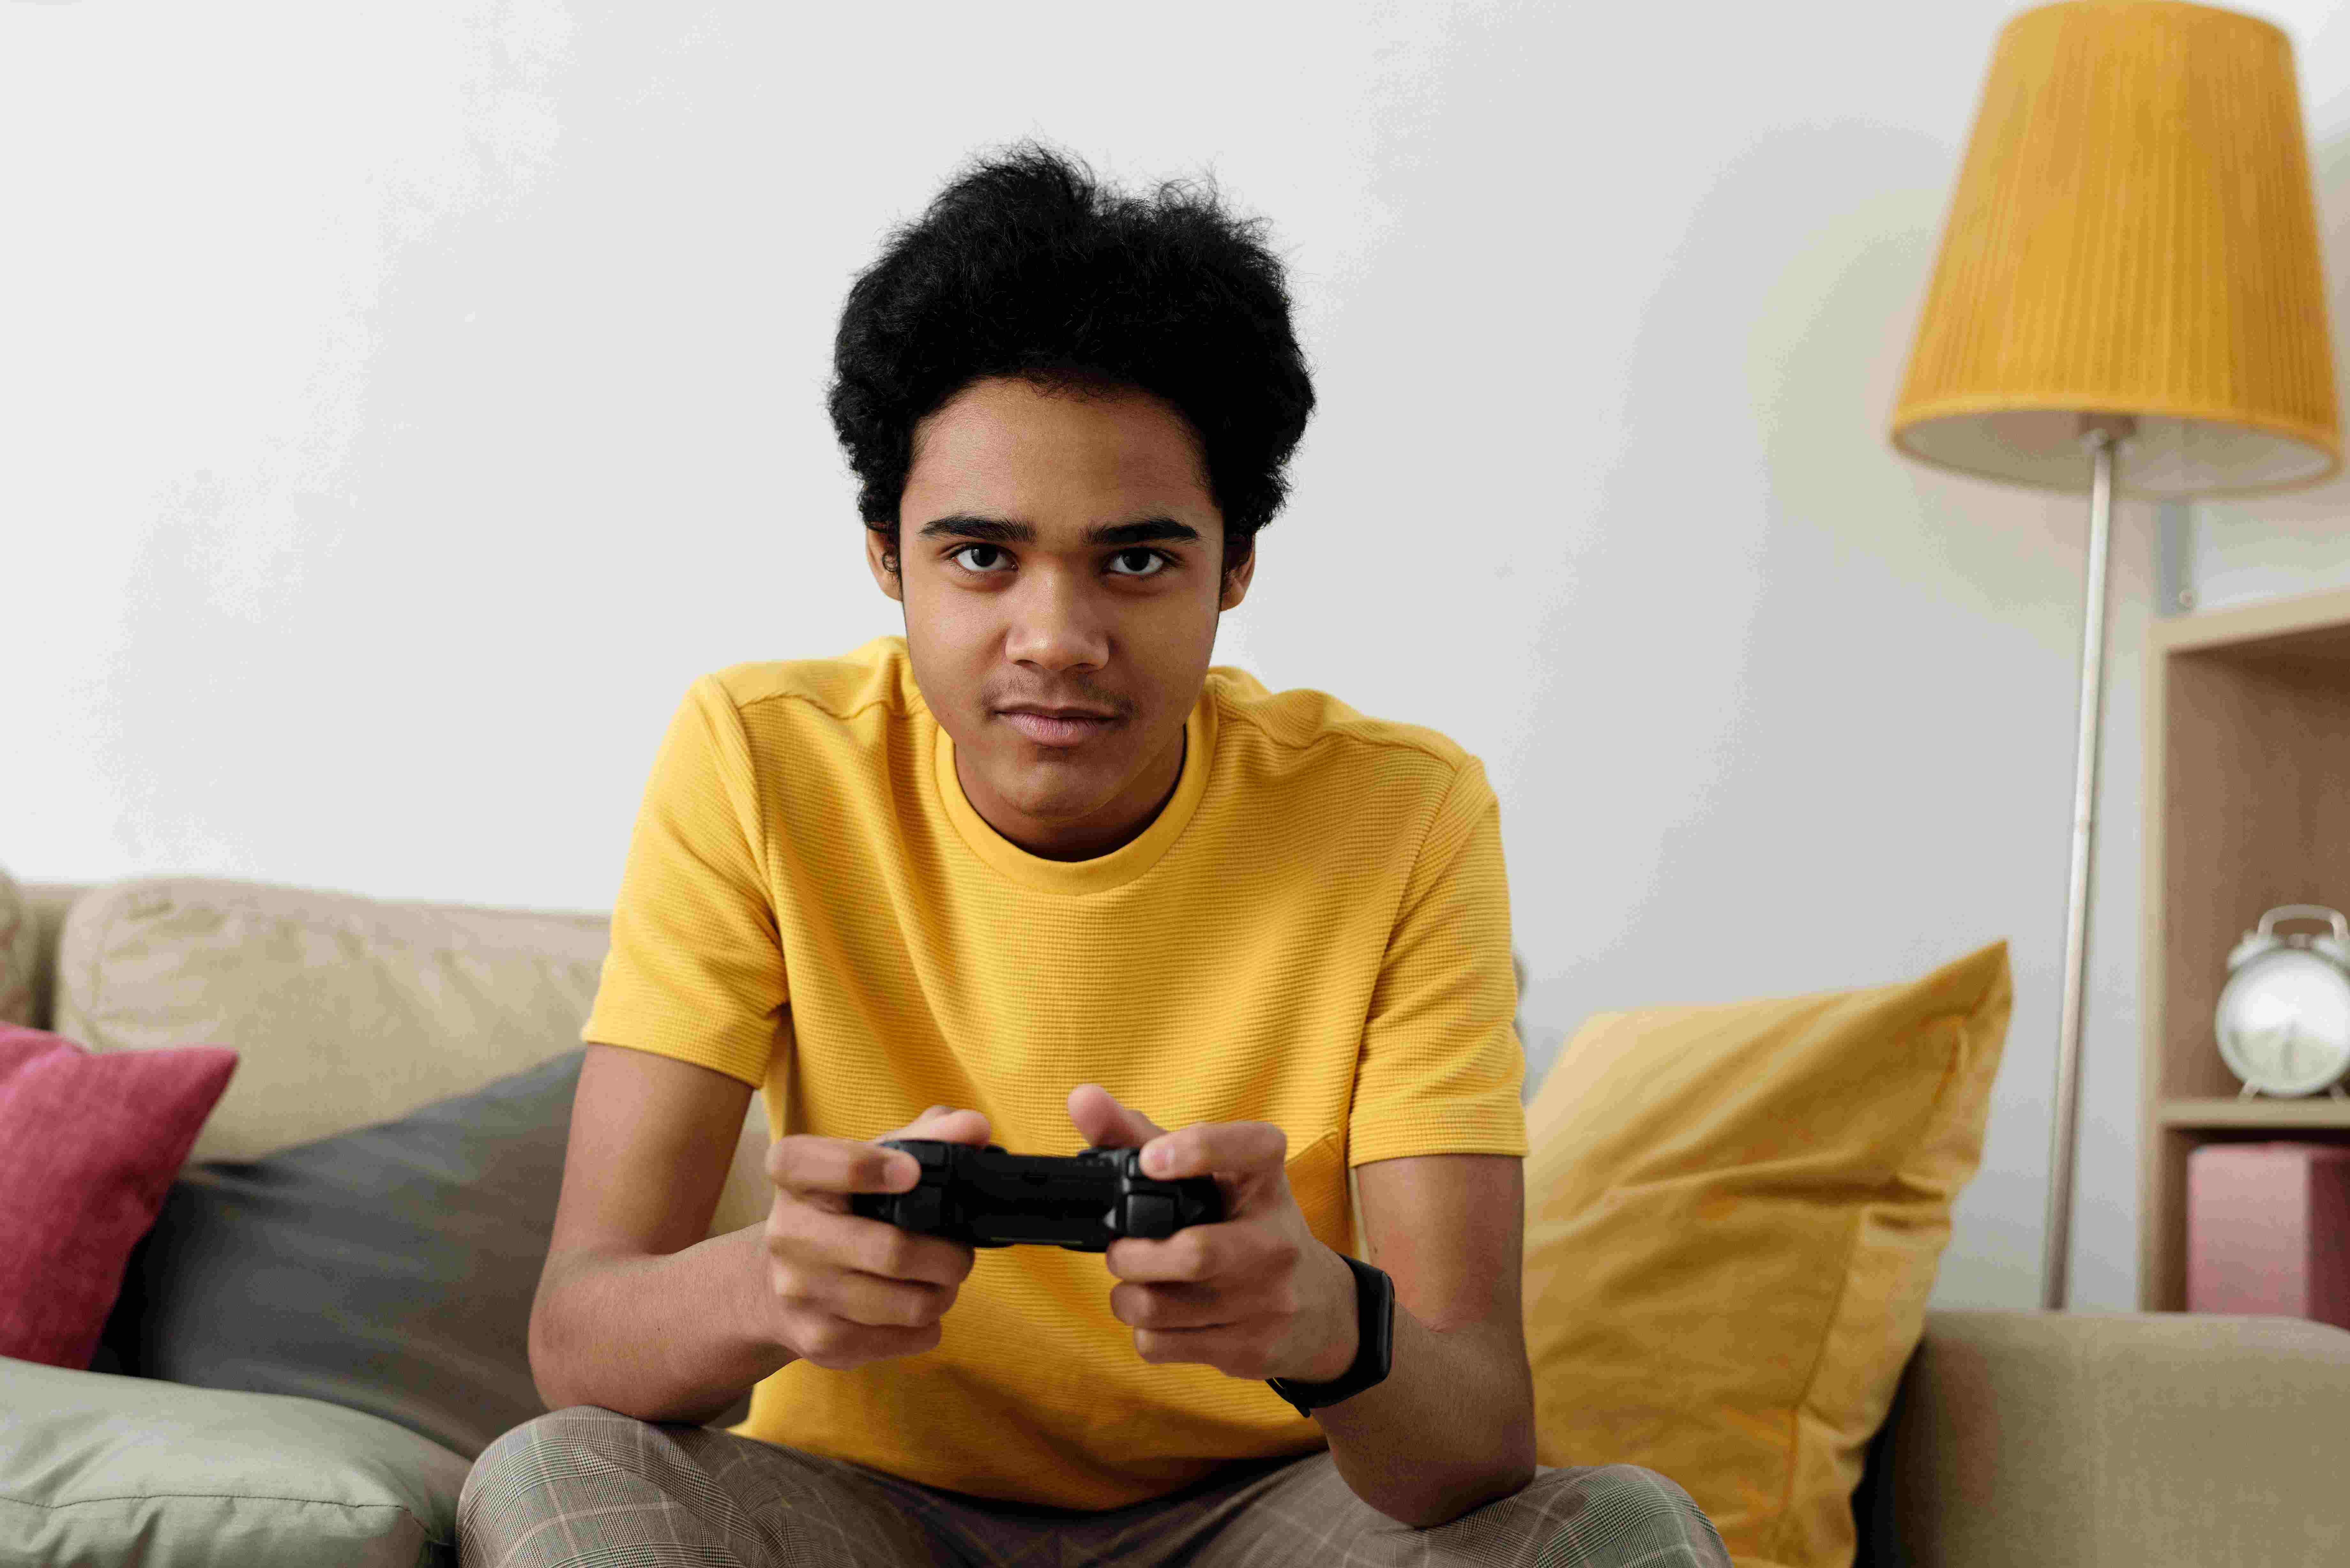 a boy in yellow t-shirt playing games extensively